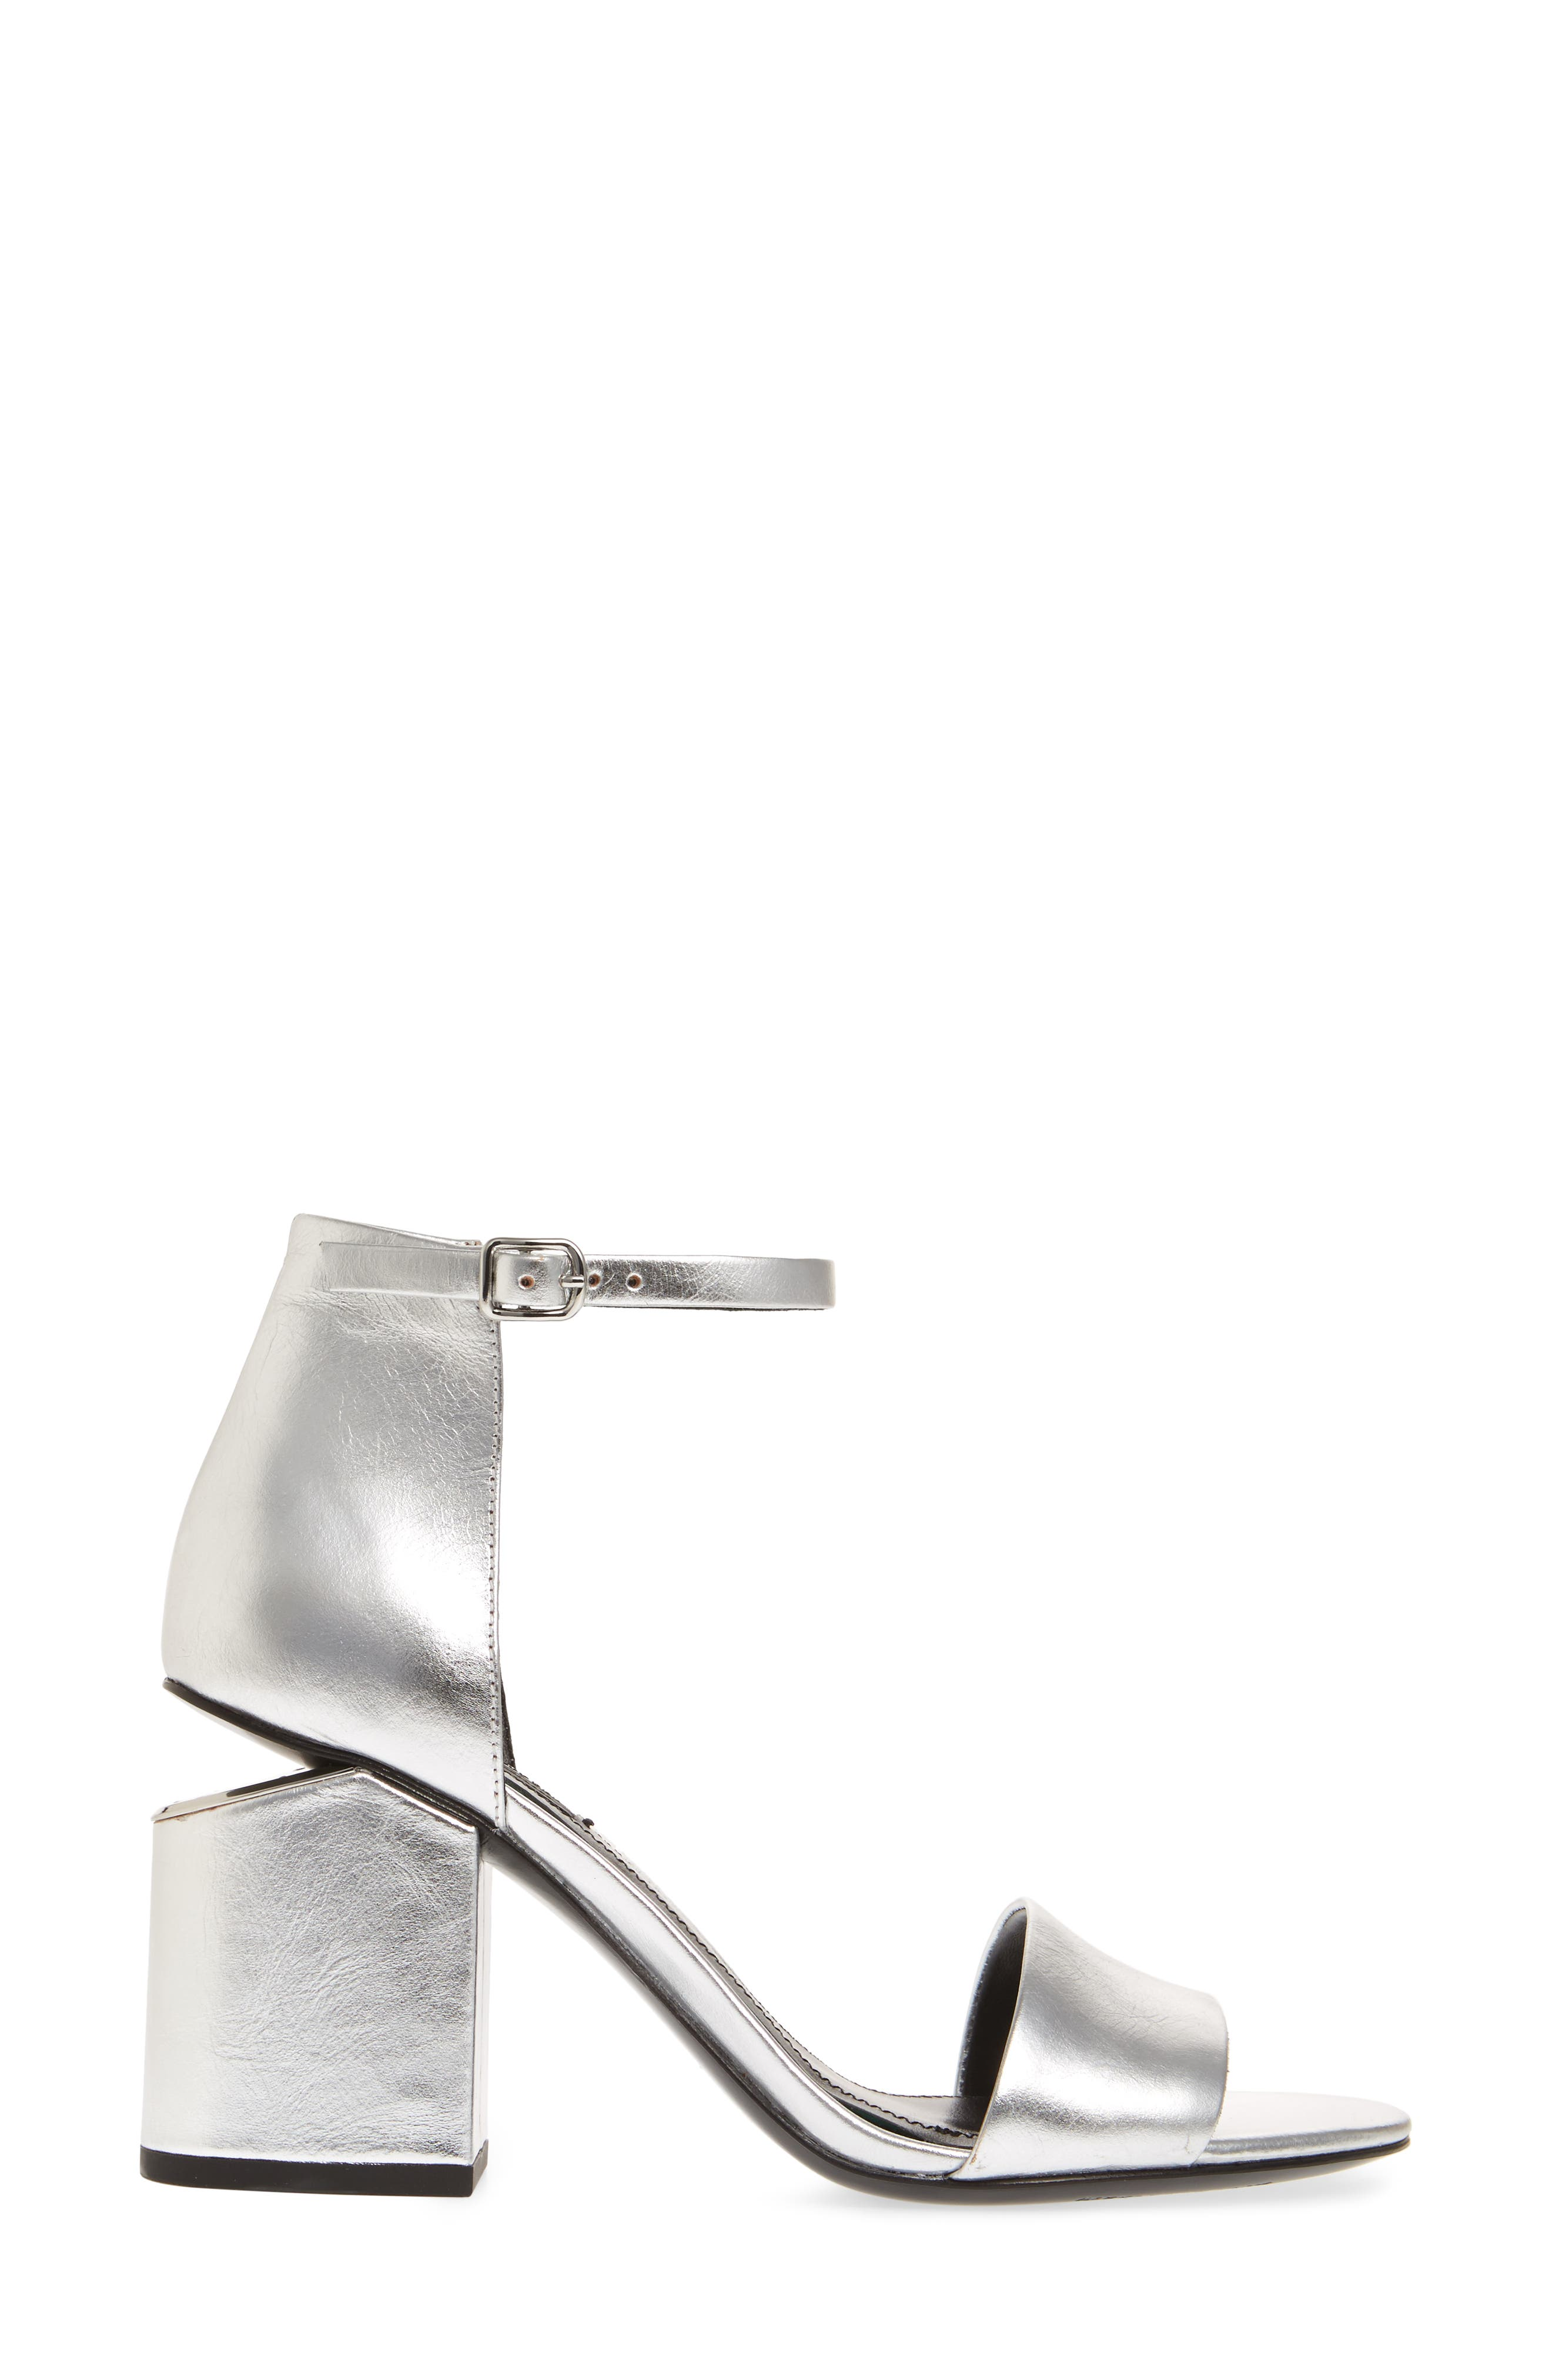 Abby Ankle Strap Sandal,                             Alternate thumbnail 3, color,                             Silver